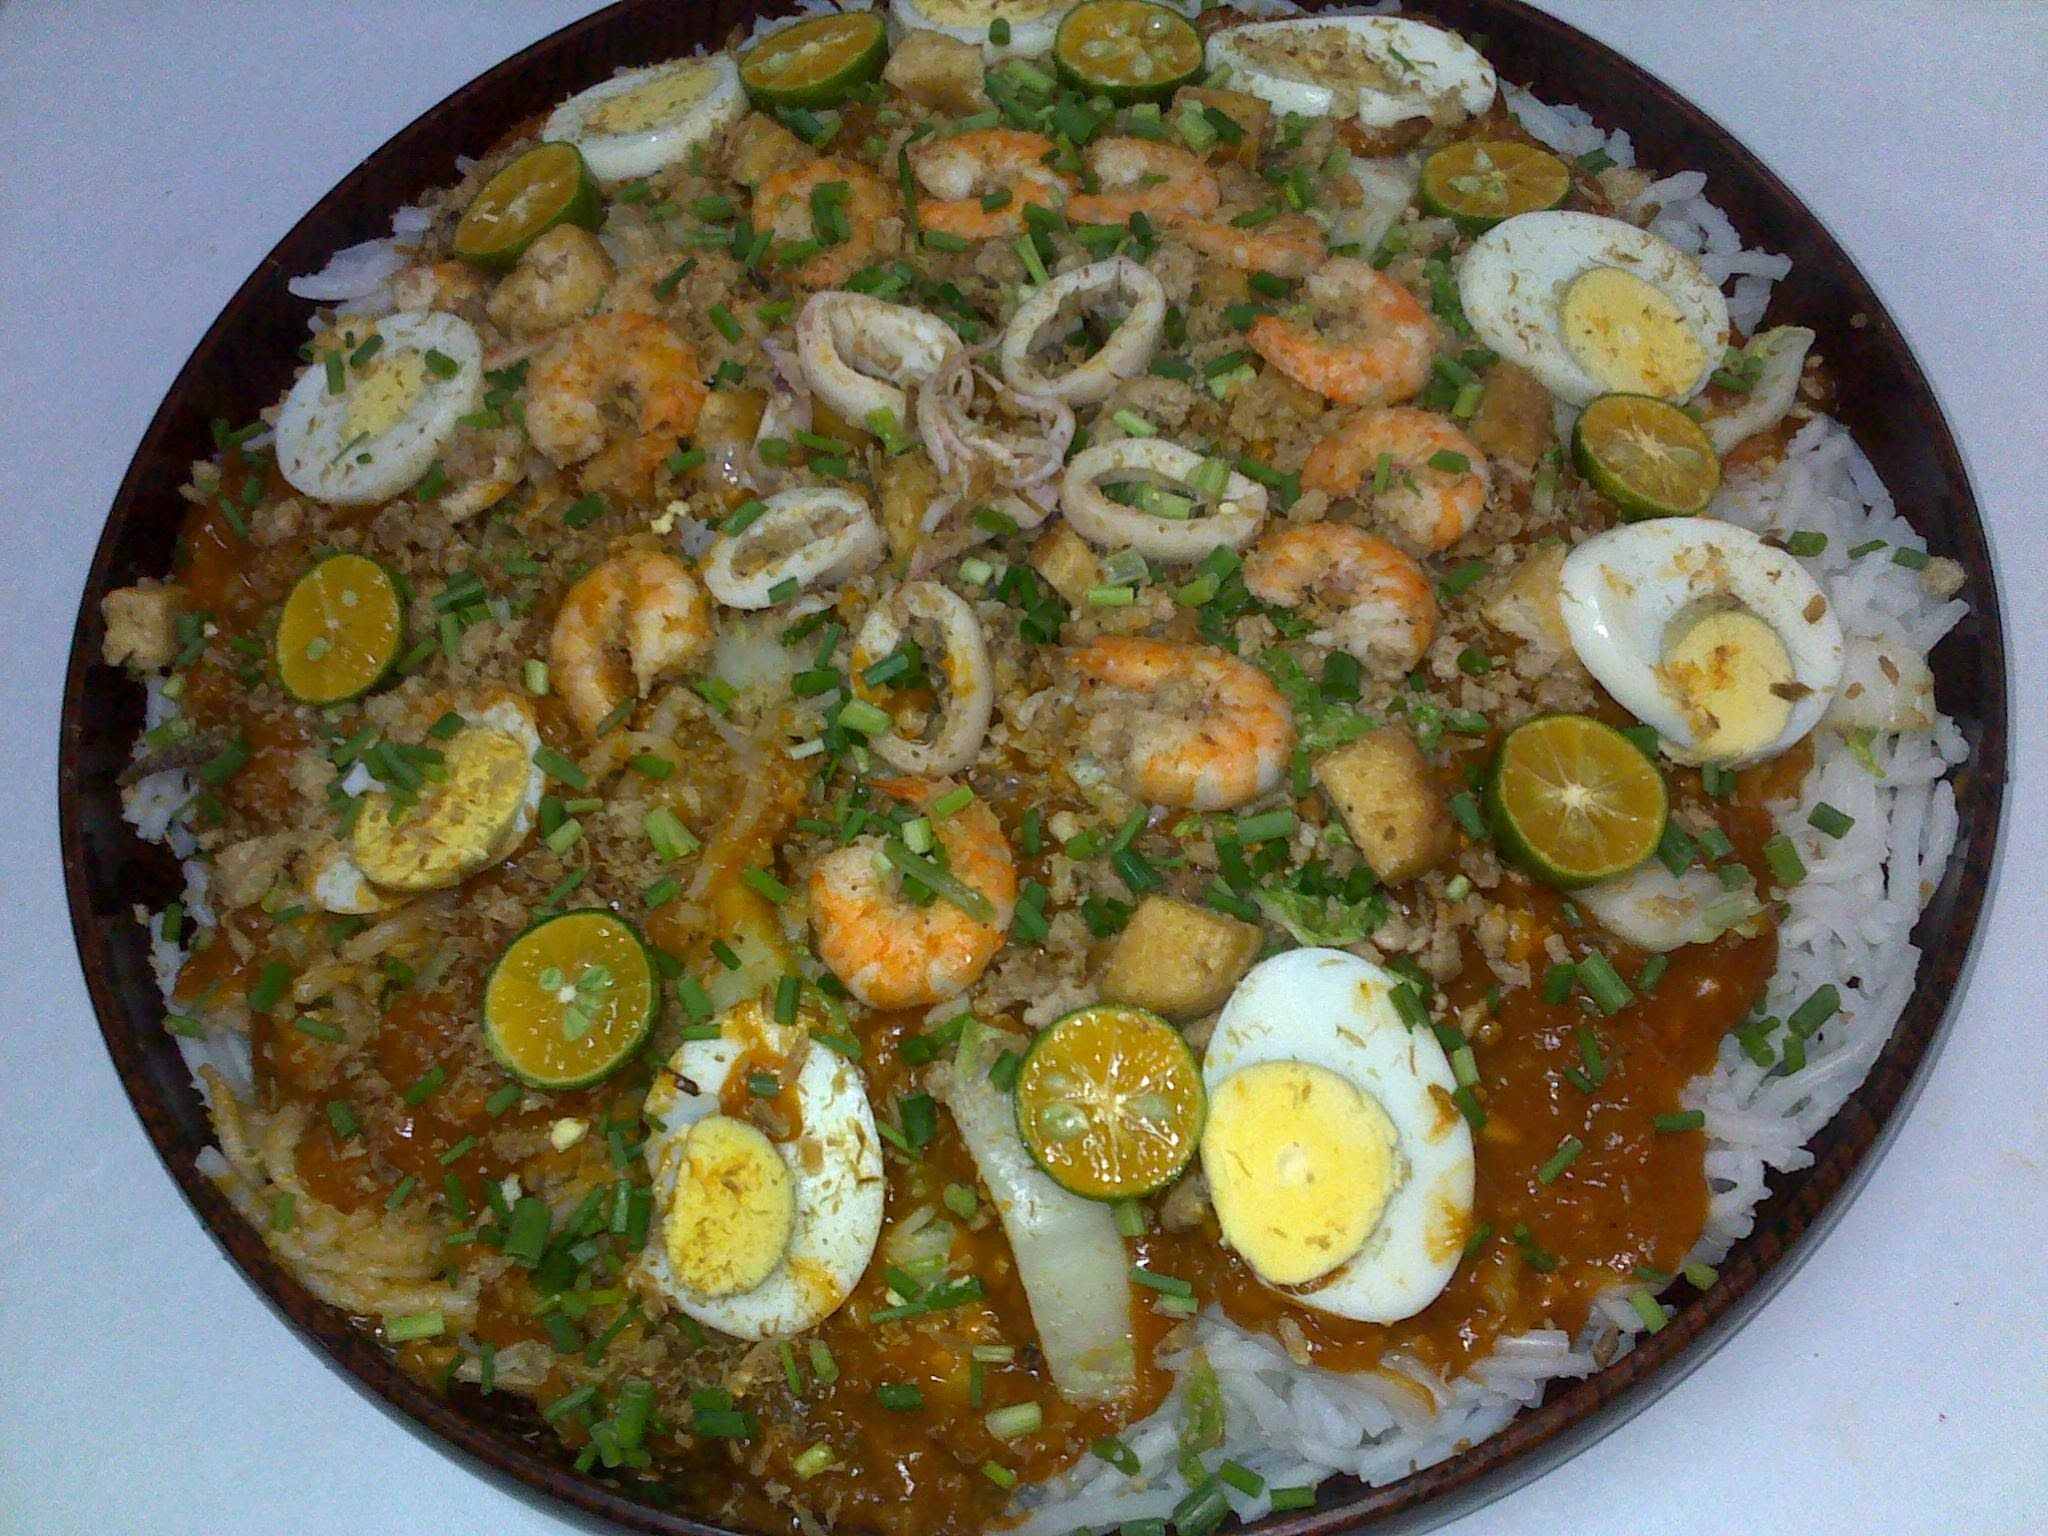 A Popular Asian Filipino Noodle Dish With Vegetable, Ground Pork, Shrimp,  Hard Boiled How To Make